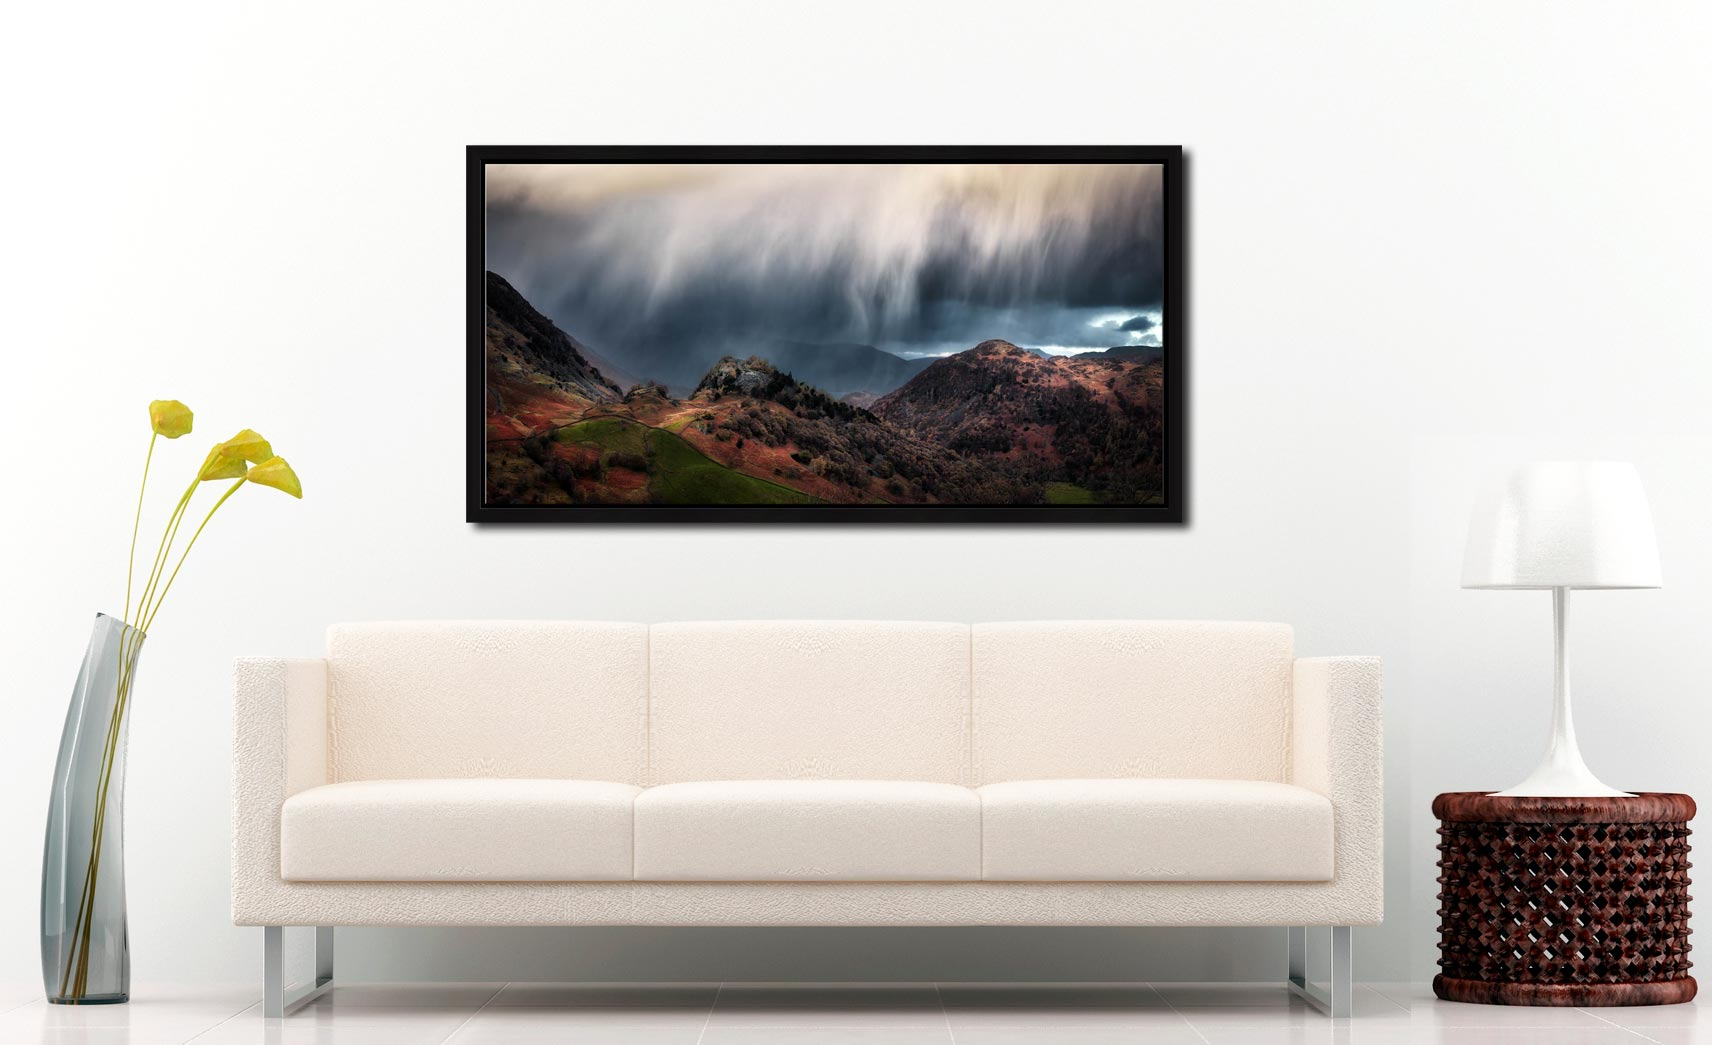 The Rains are a Coming - Black oak floater frame with acrylic glazing on Wall